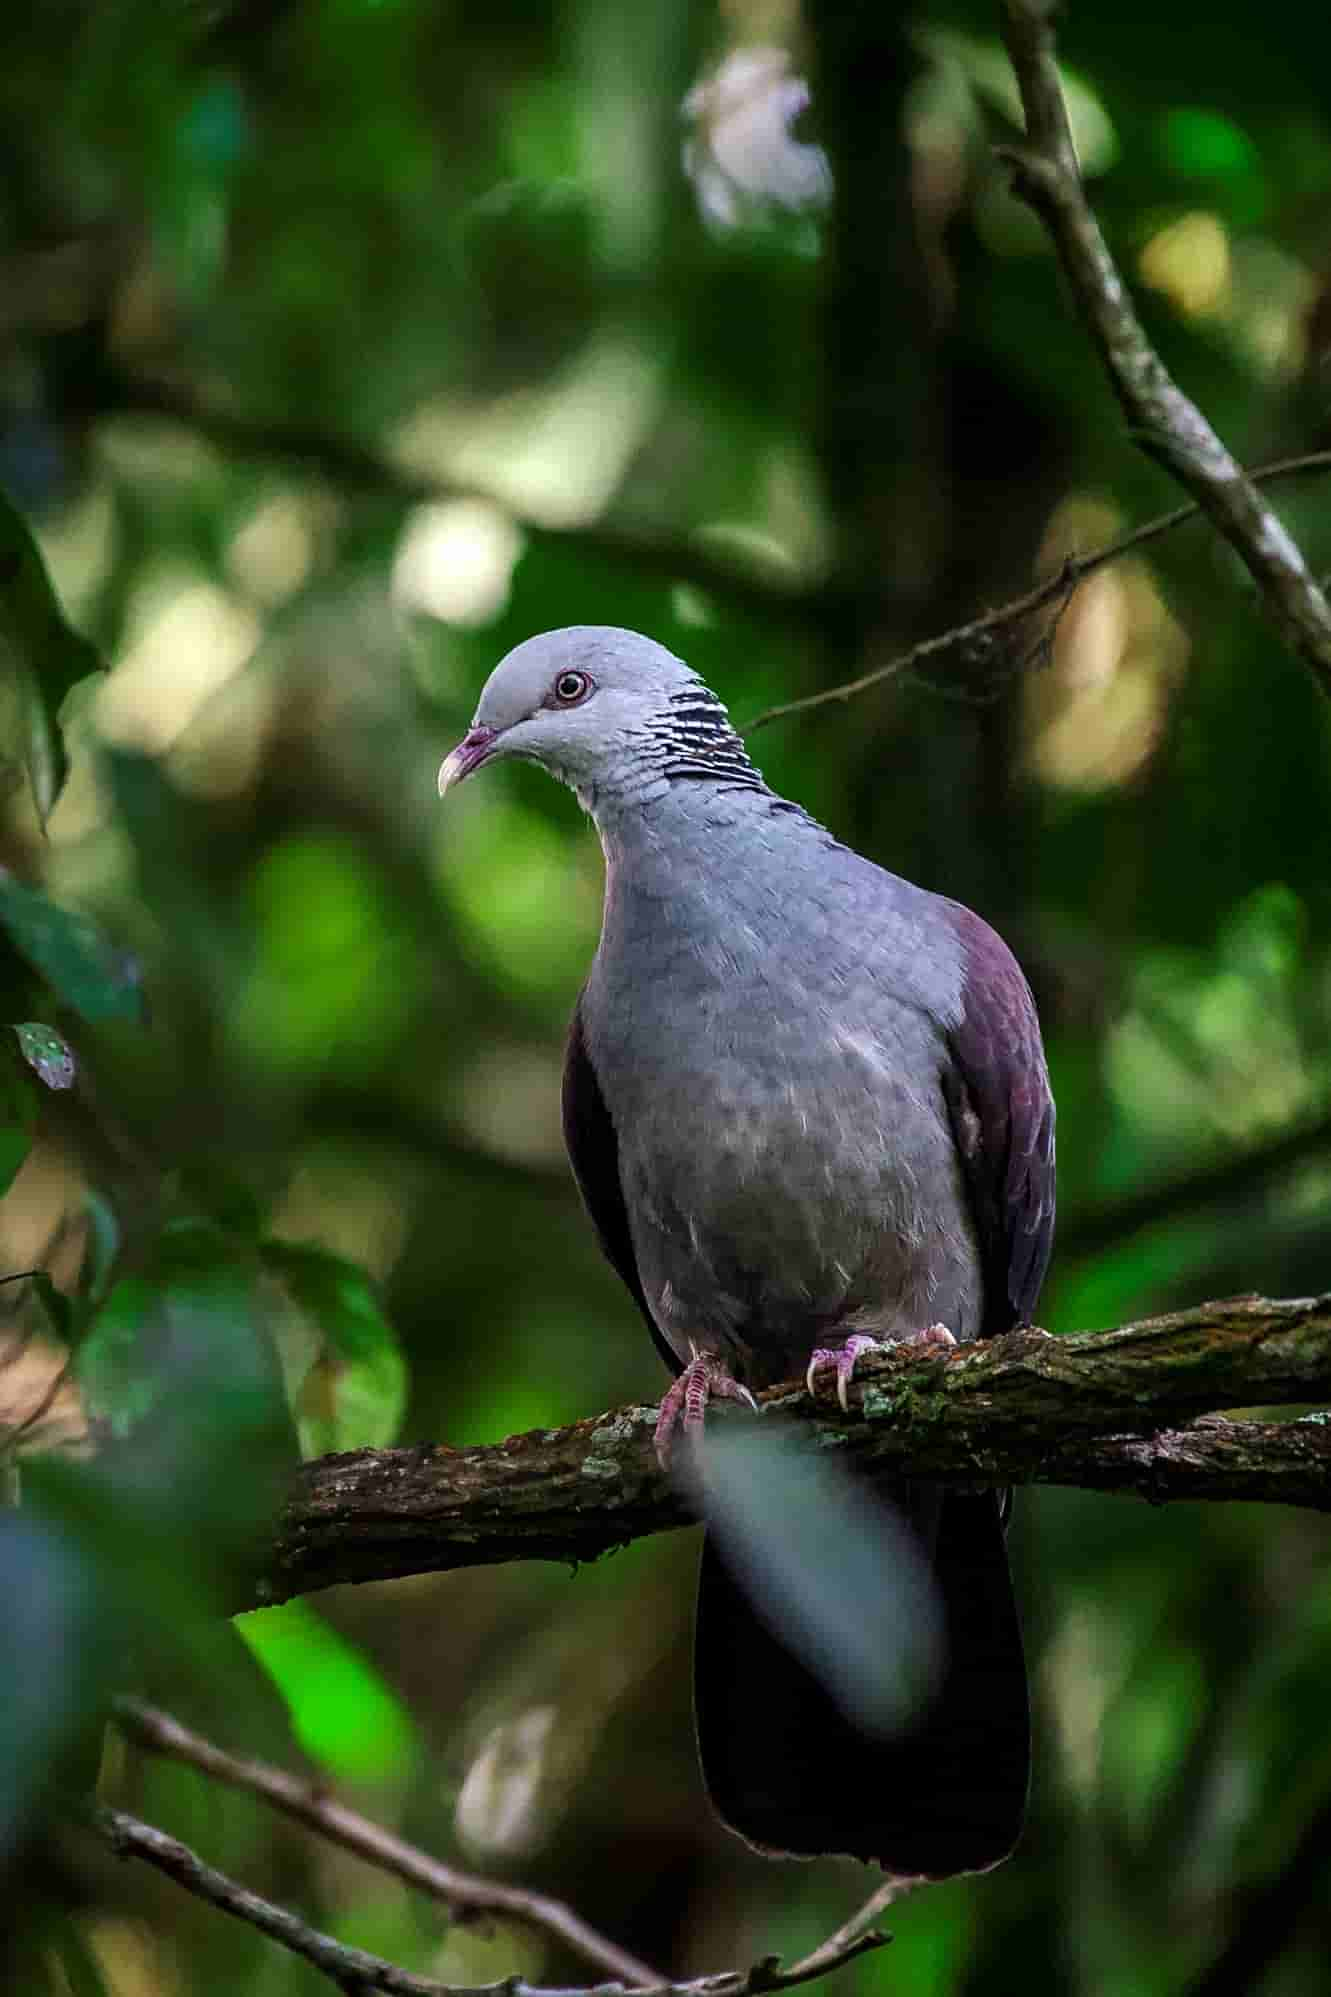 The-Pampadam-National-Park-has-many-species-of-rare-birds-fauna-and-flora.-It-is-one-of-the-Idukki-unexplored-places